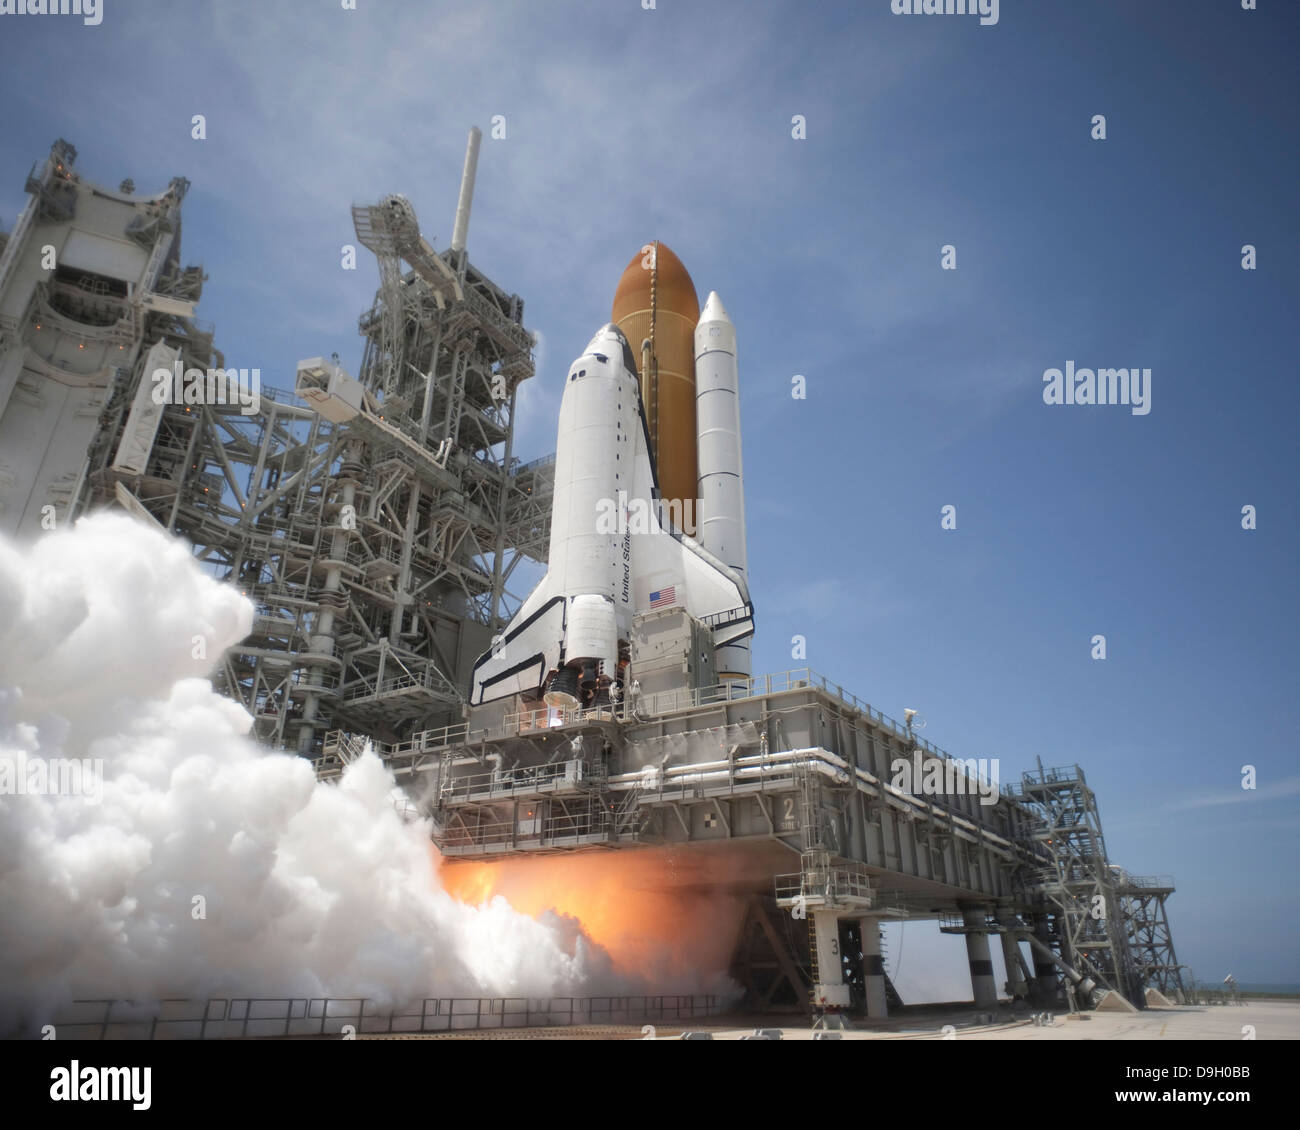 An exhaust plume forms under the mobile launcher platform on Launch Pad 39A as space shuttle Atlantis lifts off - Stock Image